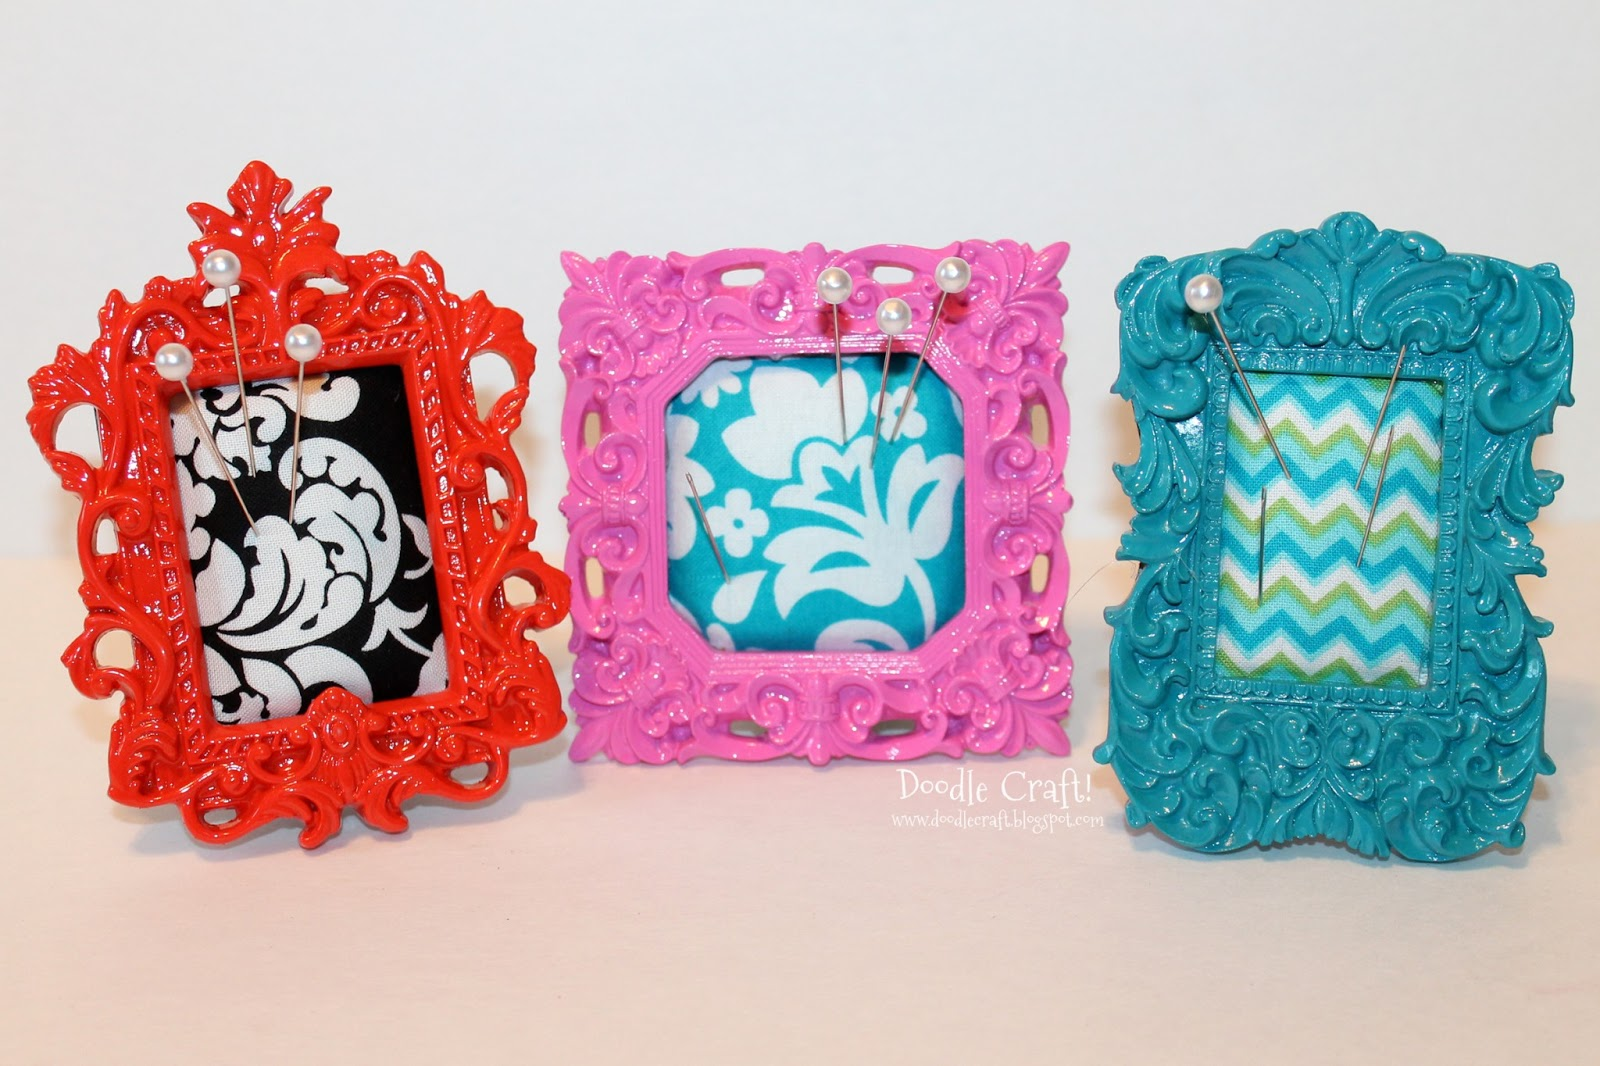 mini frame pincushions - Mini Frame